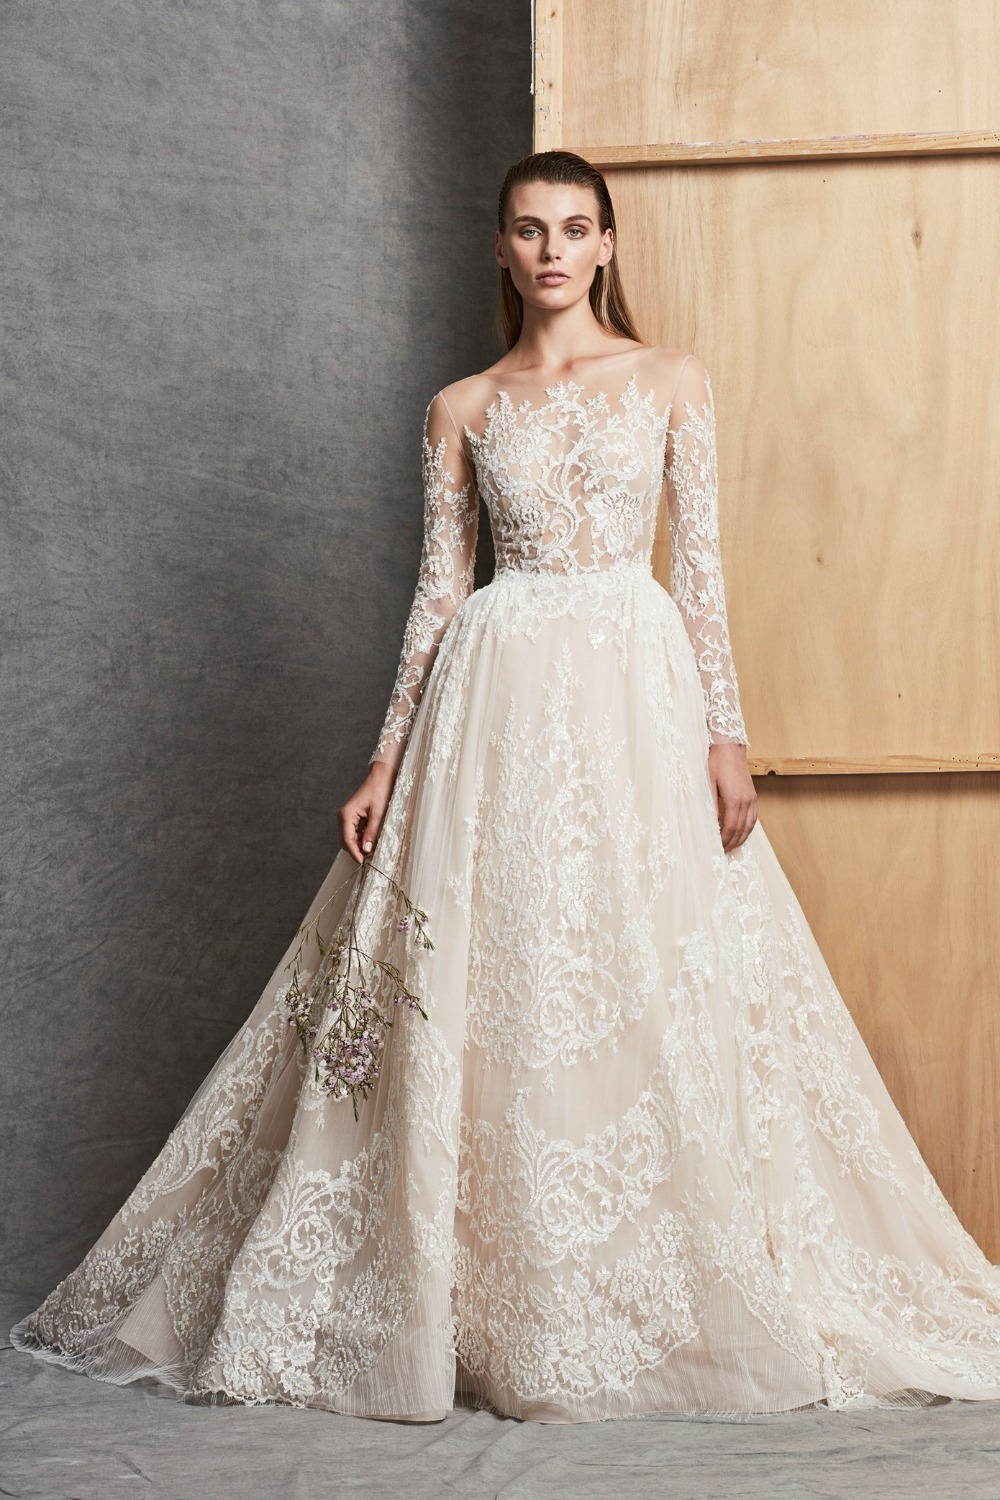 trending meghan markle might wear this wedding dress meghan markle might wear this wedding dress